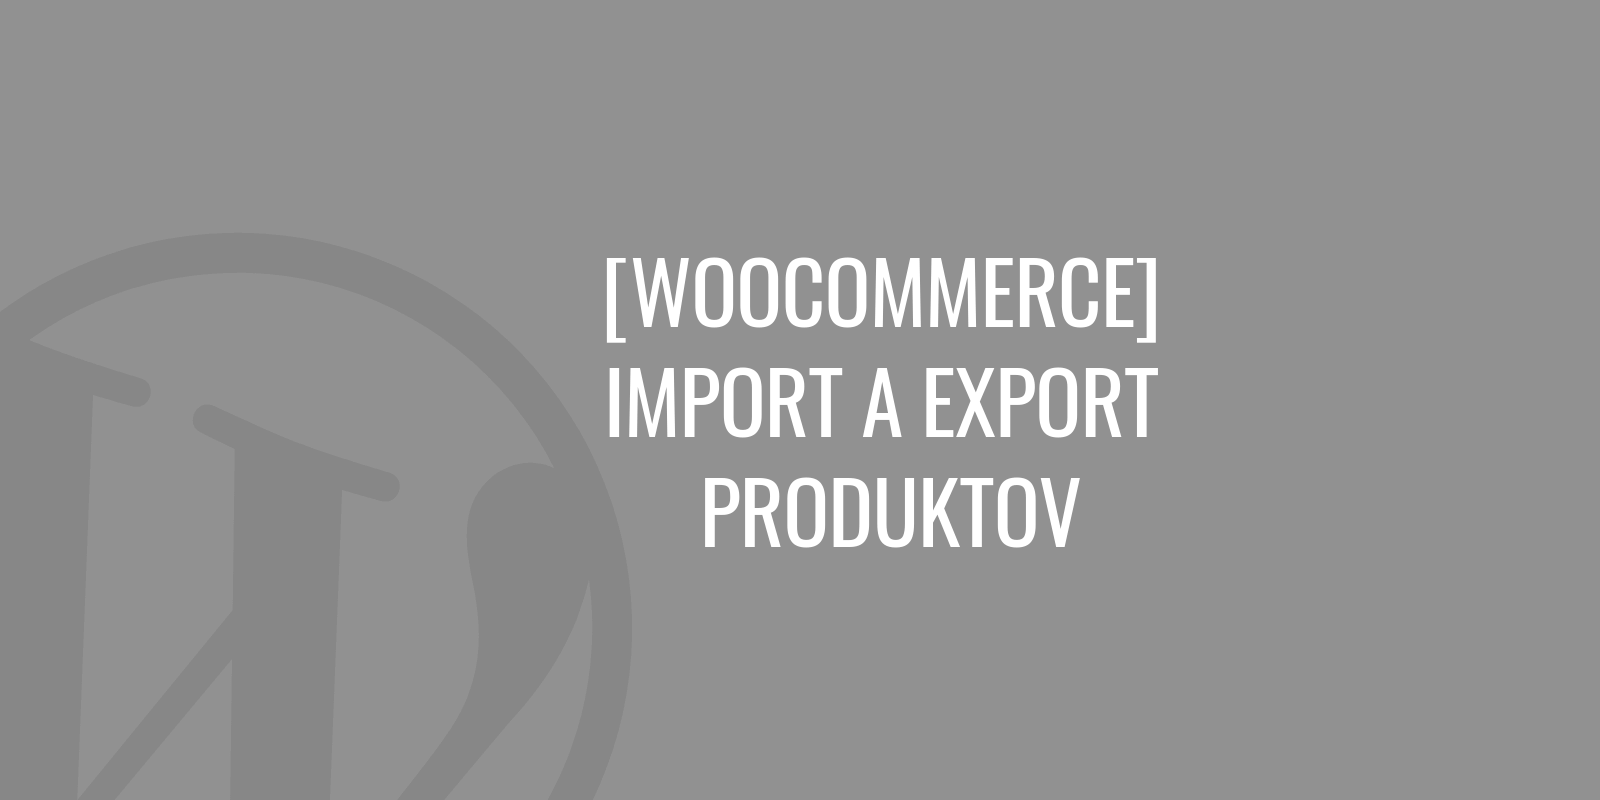 WooCommerce import a export produktov